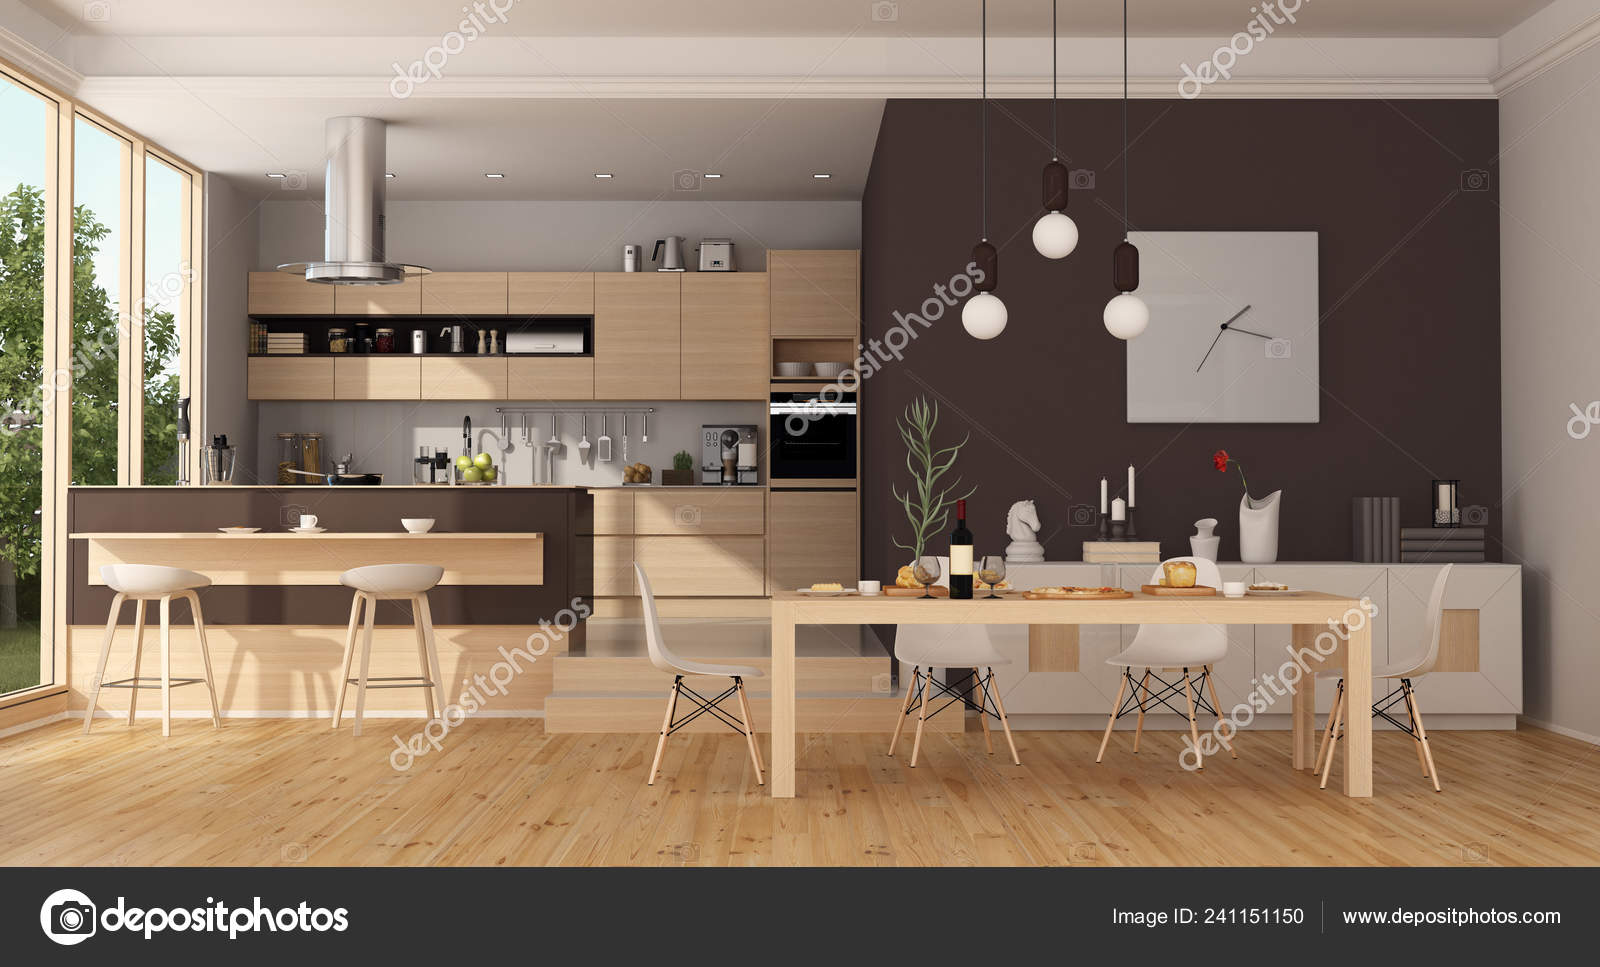 Modern Wooden Kitchen Island Dining Table Rendering Stock Photo Image By C Archideaphoto 241151150